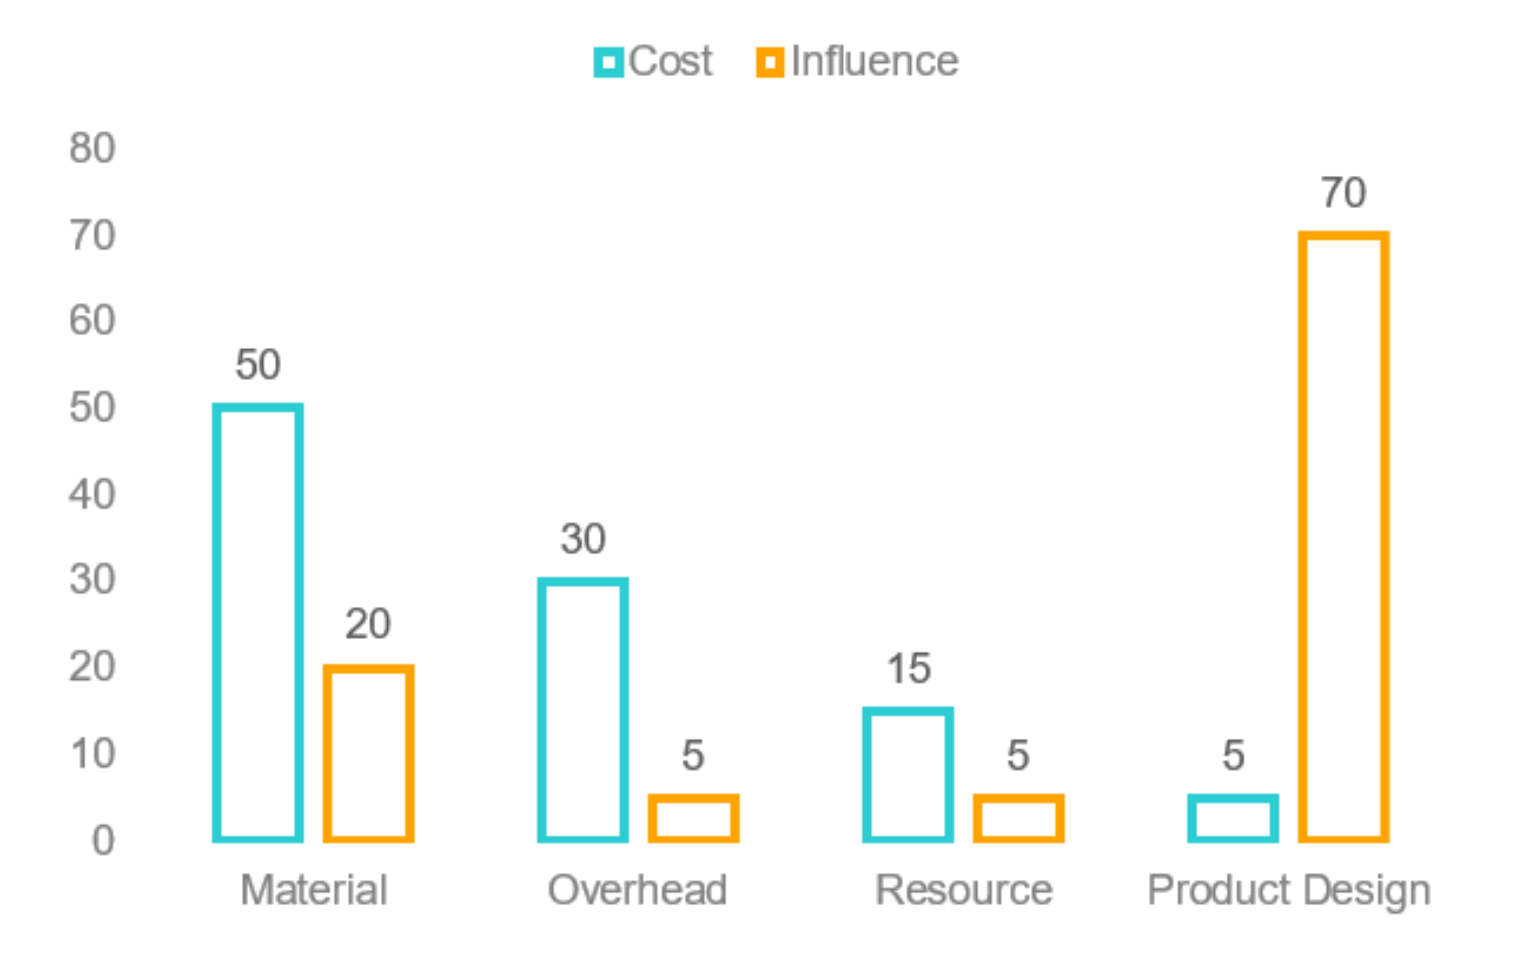 Cost_influence-chart-1536x968